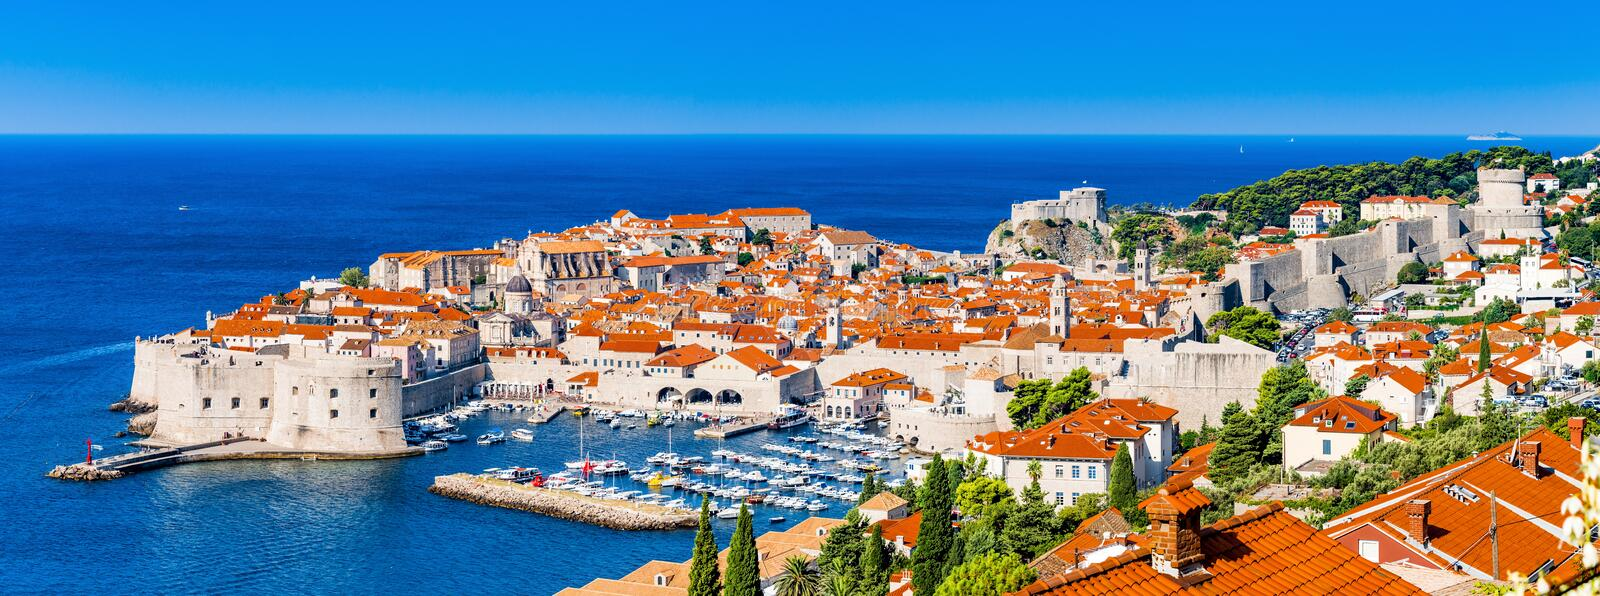 Panorama de Dubrovnik en Croatie photos stock